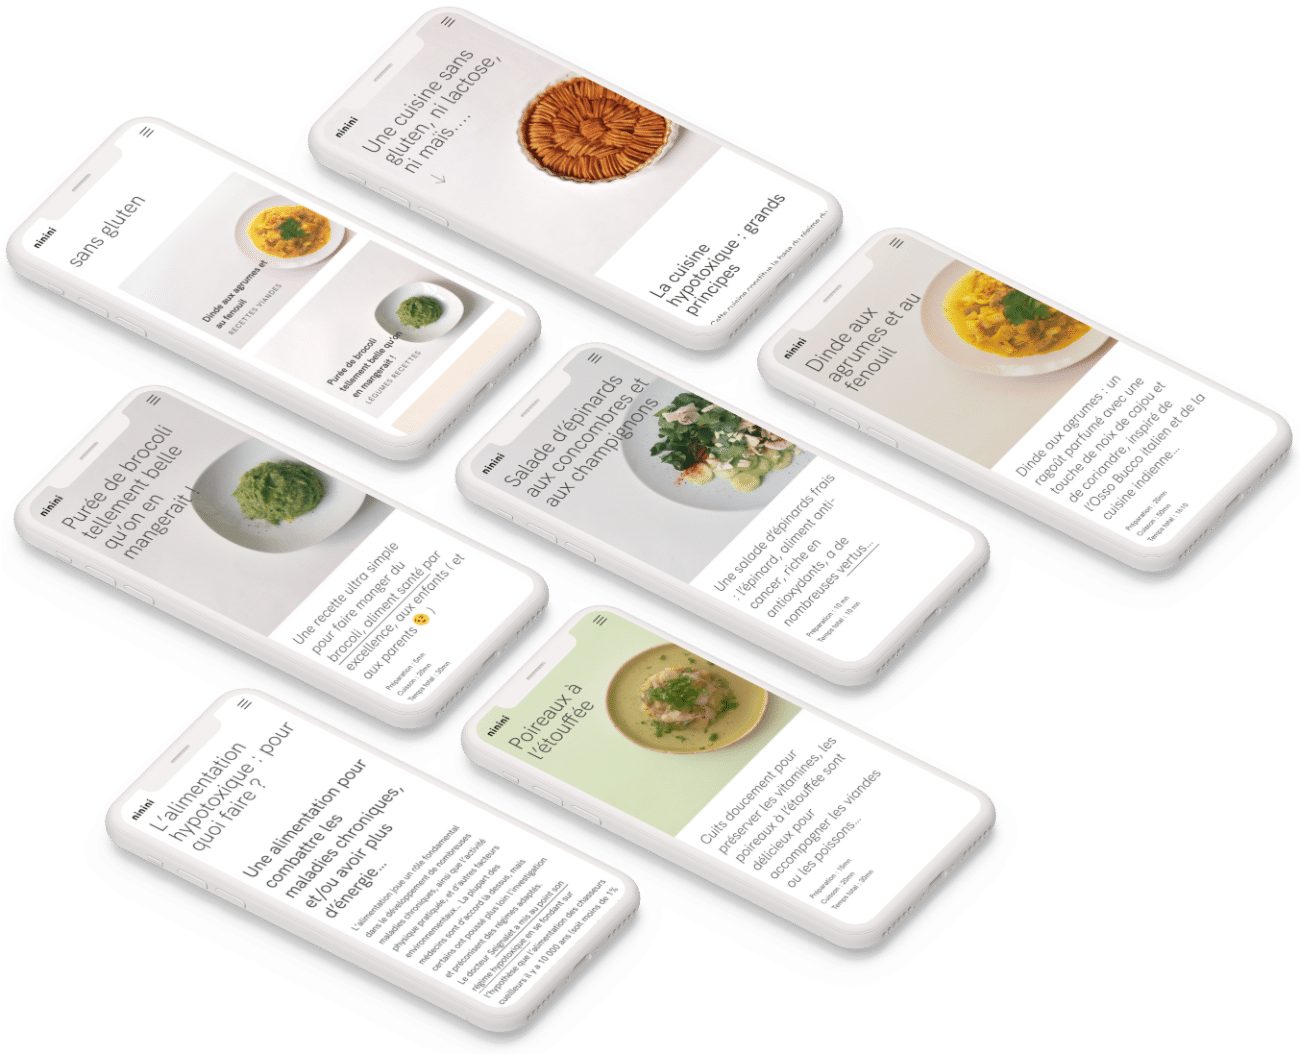 Blog de cuisine : pages sur iphone